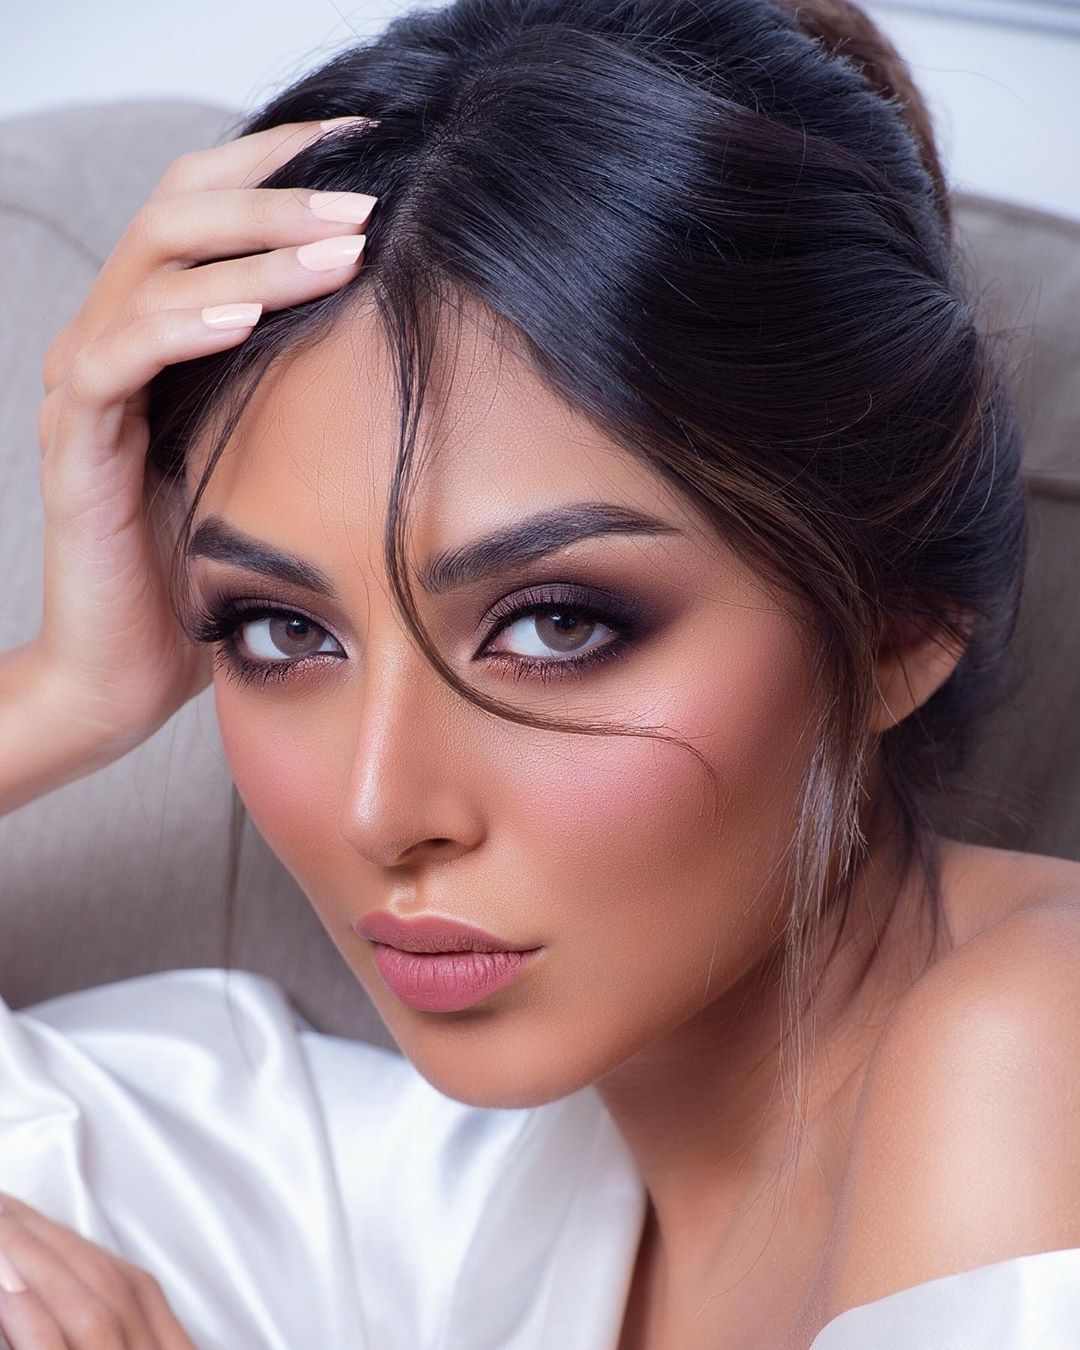 Image May Contain One Or More People And Closeup Cute Makeup Arab Beauty Beauty Face